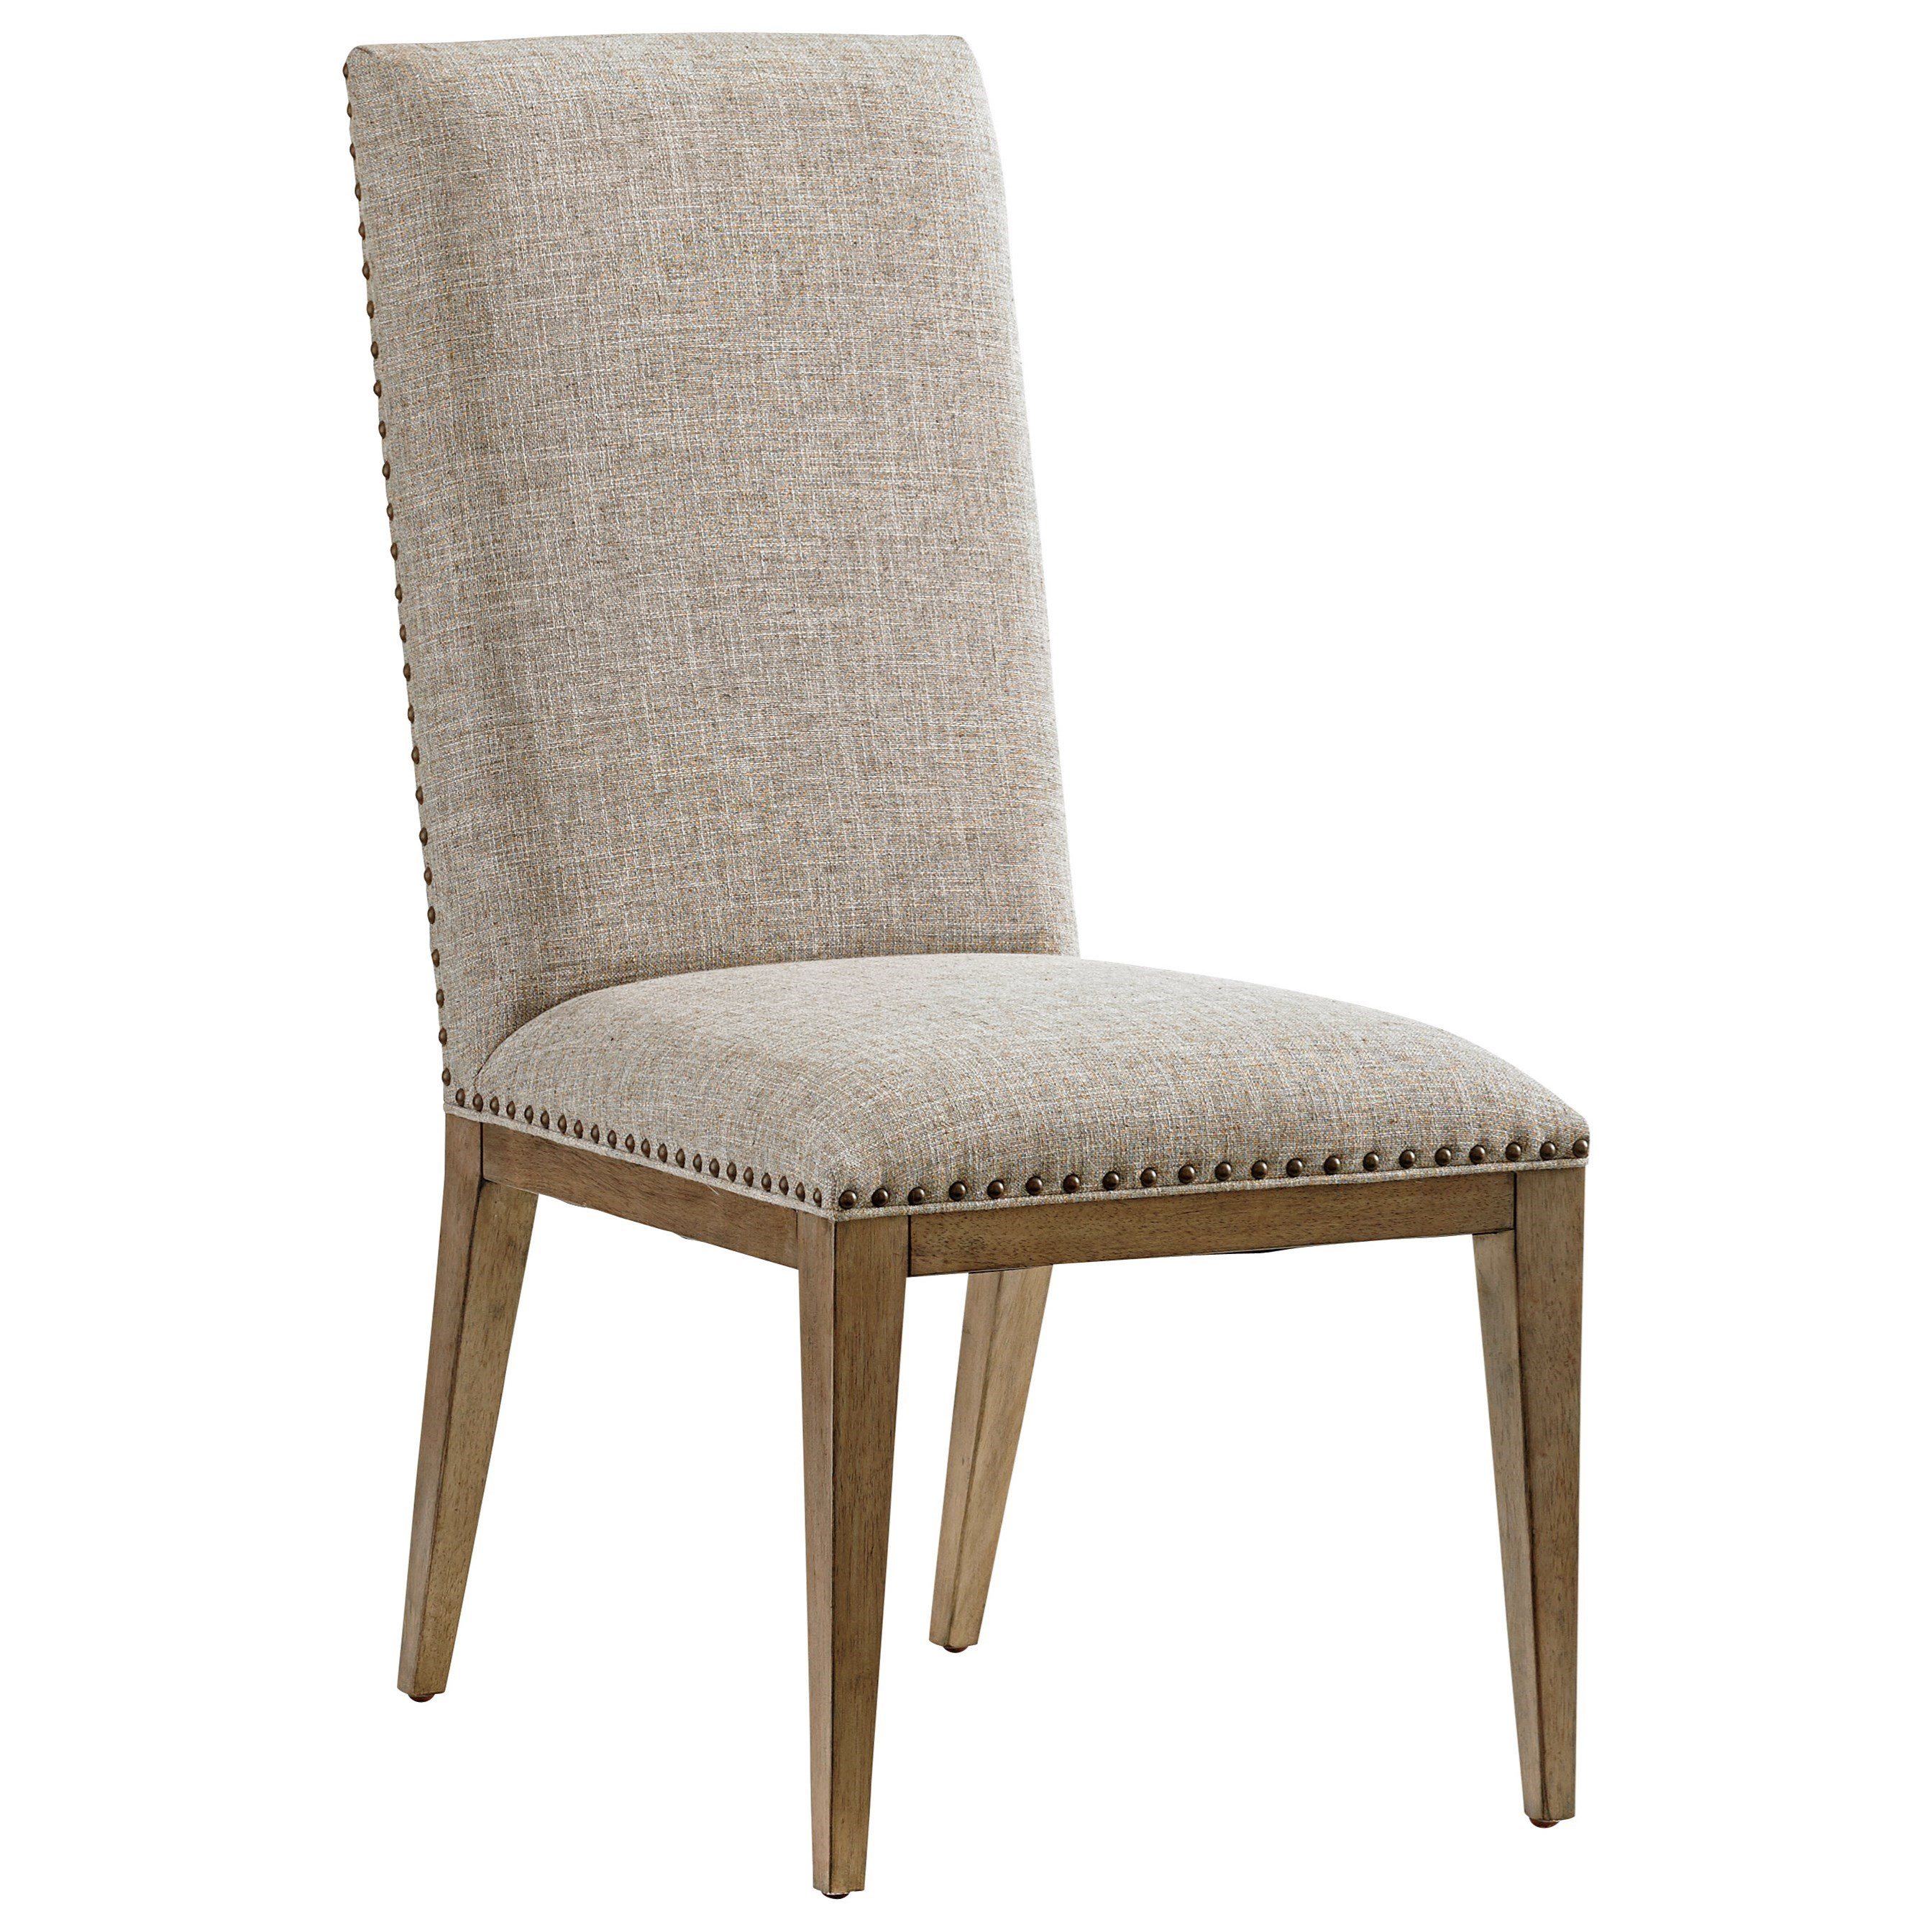 Tommy Bahama Home Cypress Point Devereaux Upholstered Side Chair - Item Number: 561-880-01